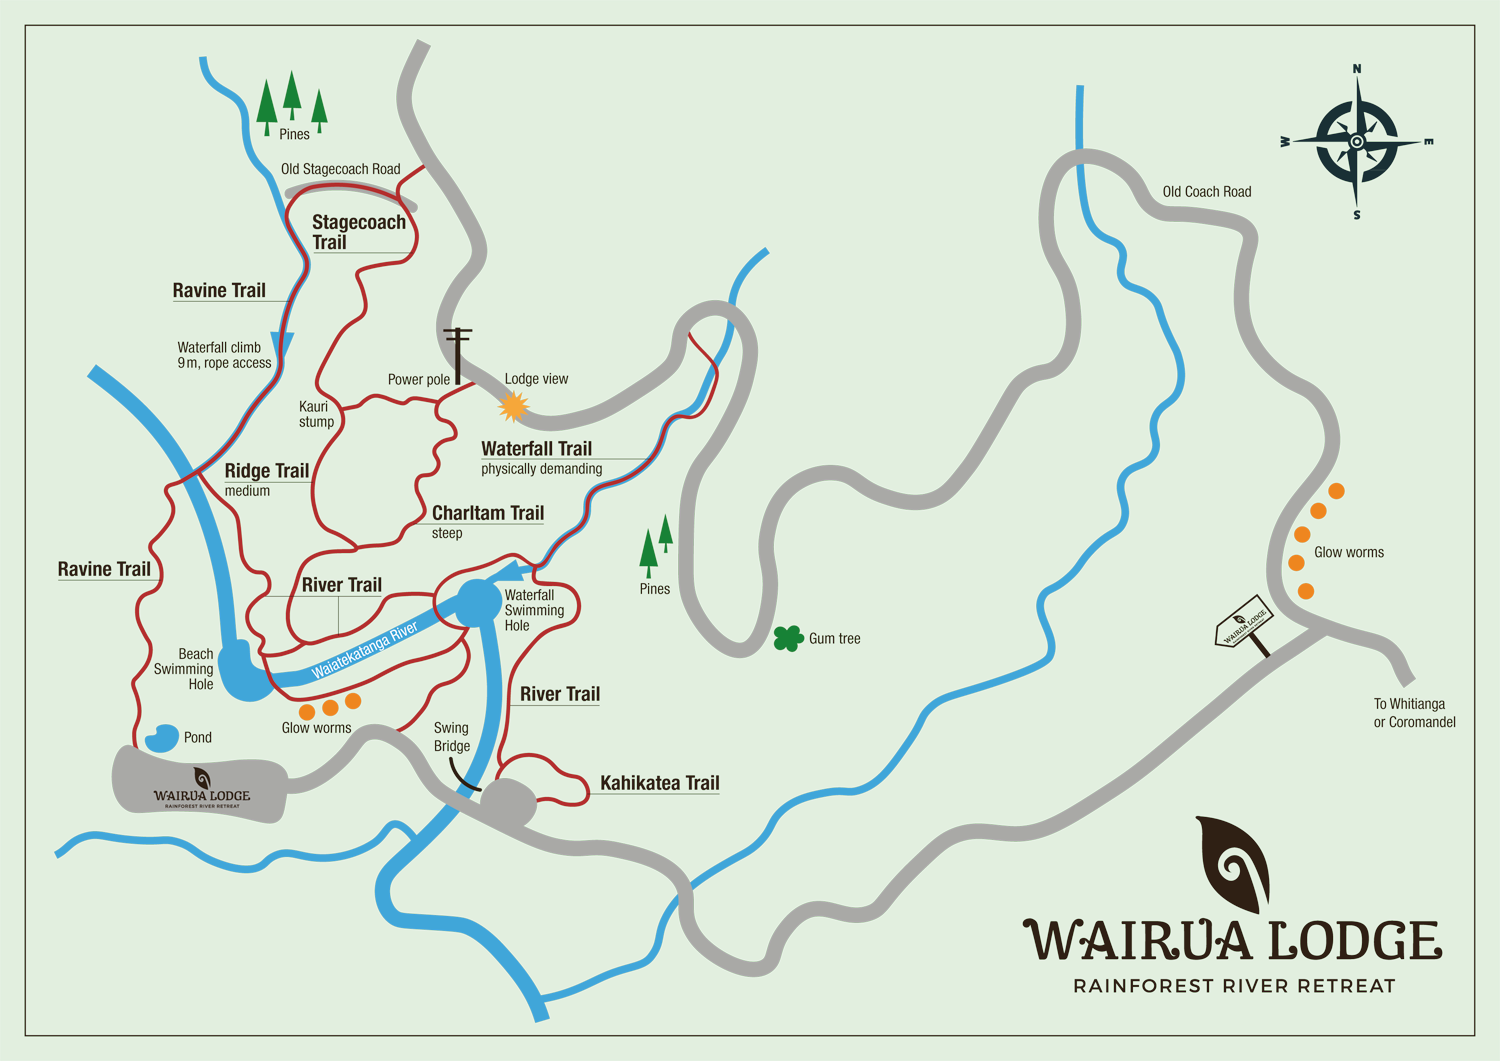 Map of the natural Trails at Wairua Lodge. Rainforest Trails, River Trails, Easy to challenging Trails.